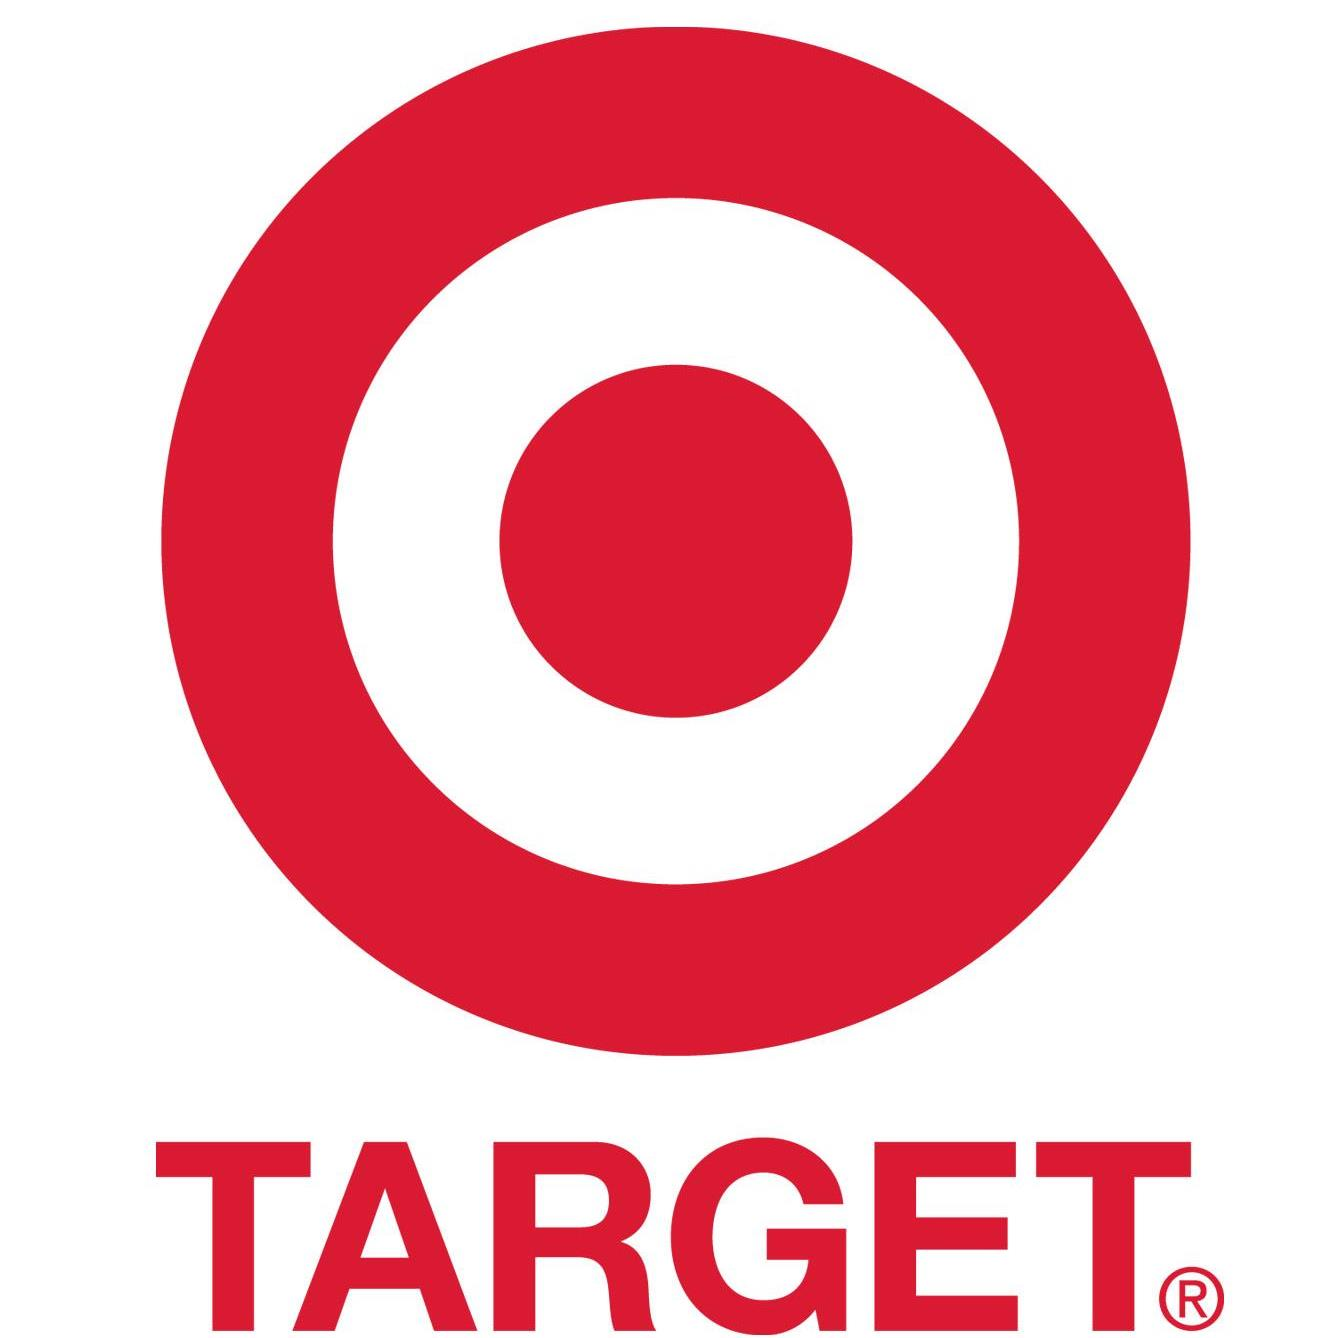 target-logo-high-resolution.jpg